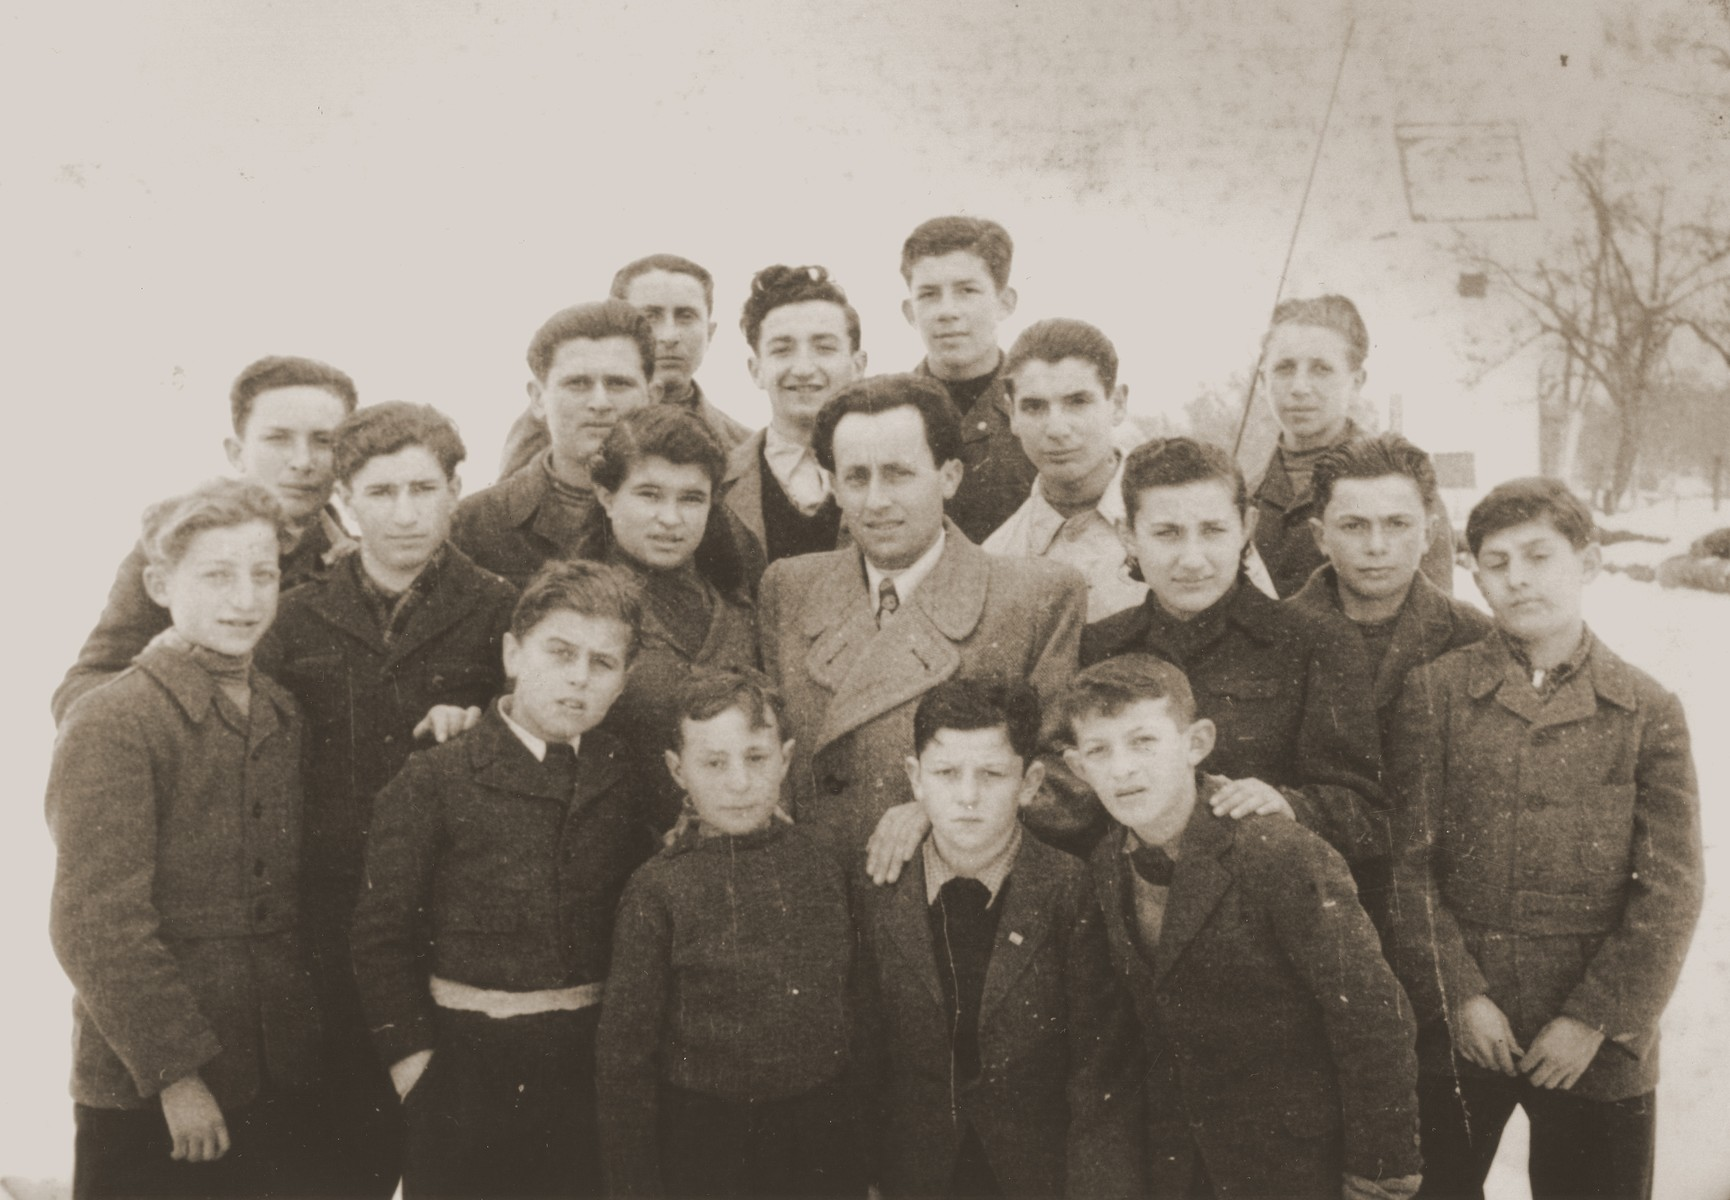 Group portrait of Jewish youth at the Tarbut school in the Gabersee displaced persons camp.  Among those pictured are Yitzhak Appelbaum (front row, left), Martin Thau (front row, third from the left), Henia Spielman (second row, third from the left),  Motel Appelbaum (front row, right), and Mania Kronisch (second row, third from right), and Munio Zeiger (back row, center).